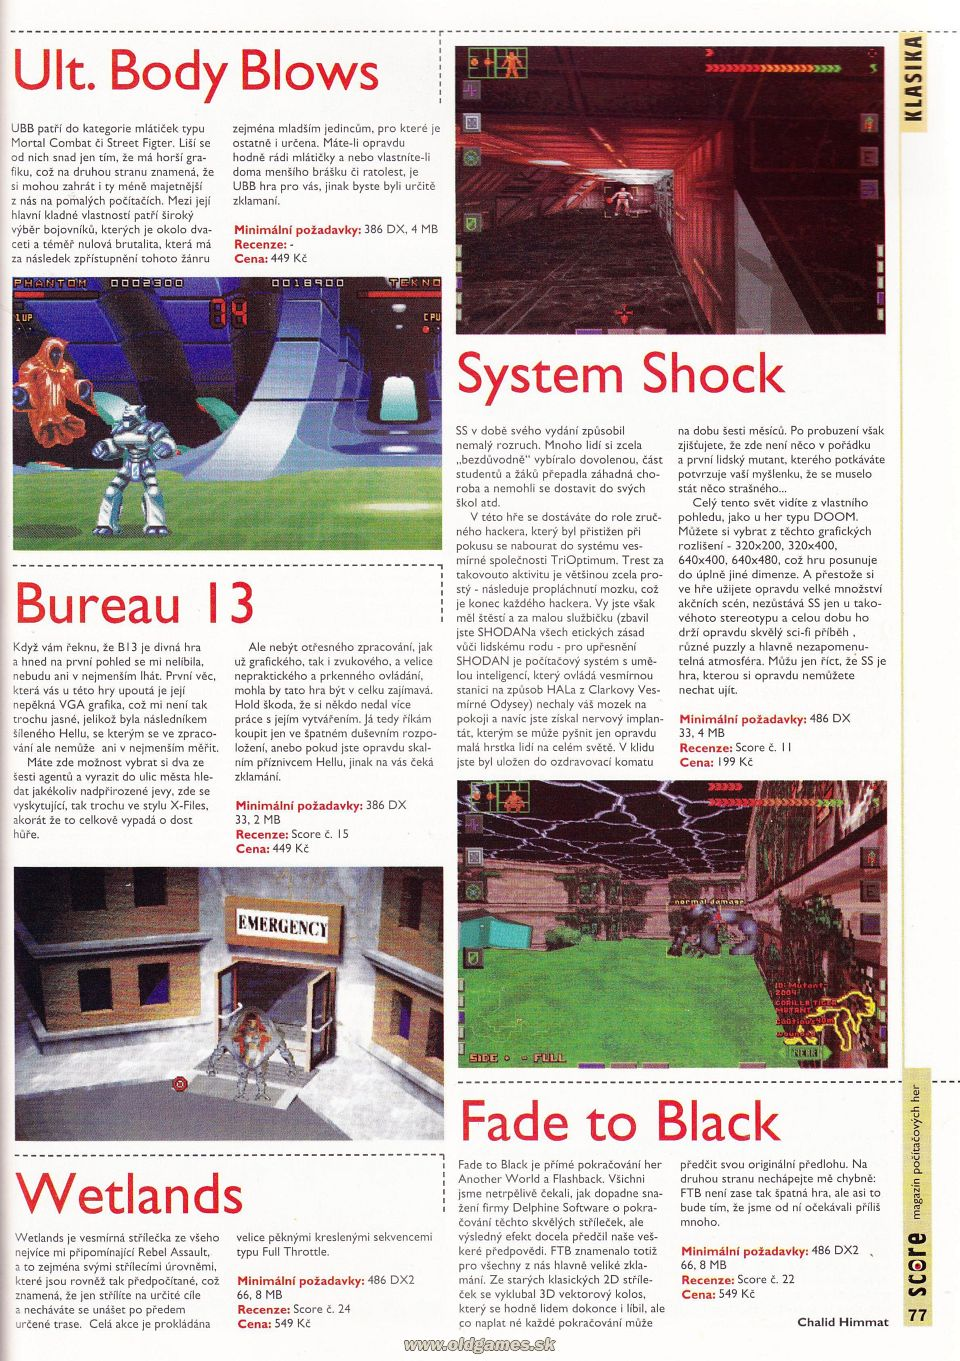 Klasika: Ultimate Body Blows, System Shock, Bureau 13, Wetlands, Fade to Black